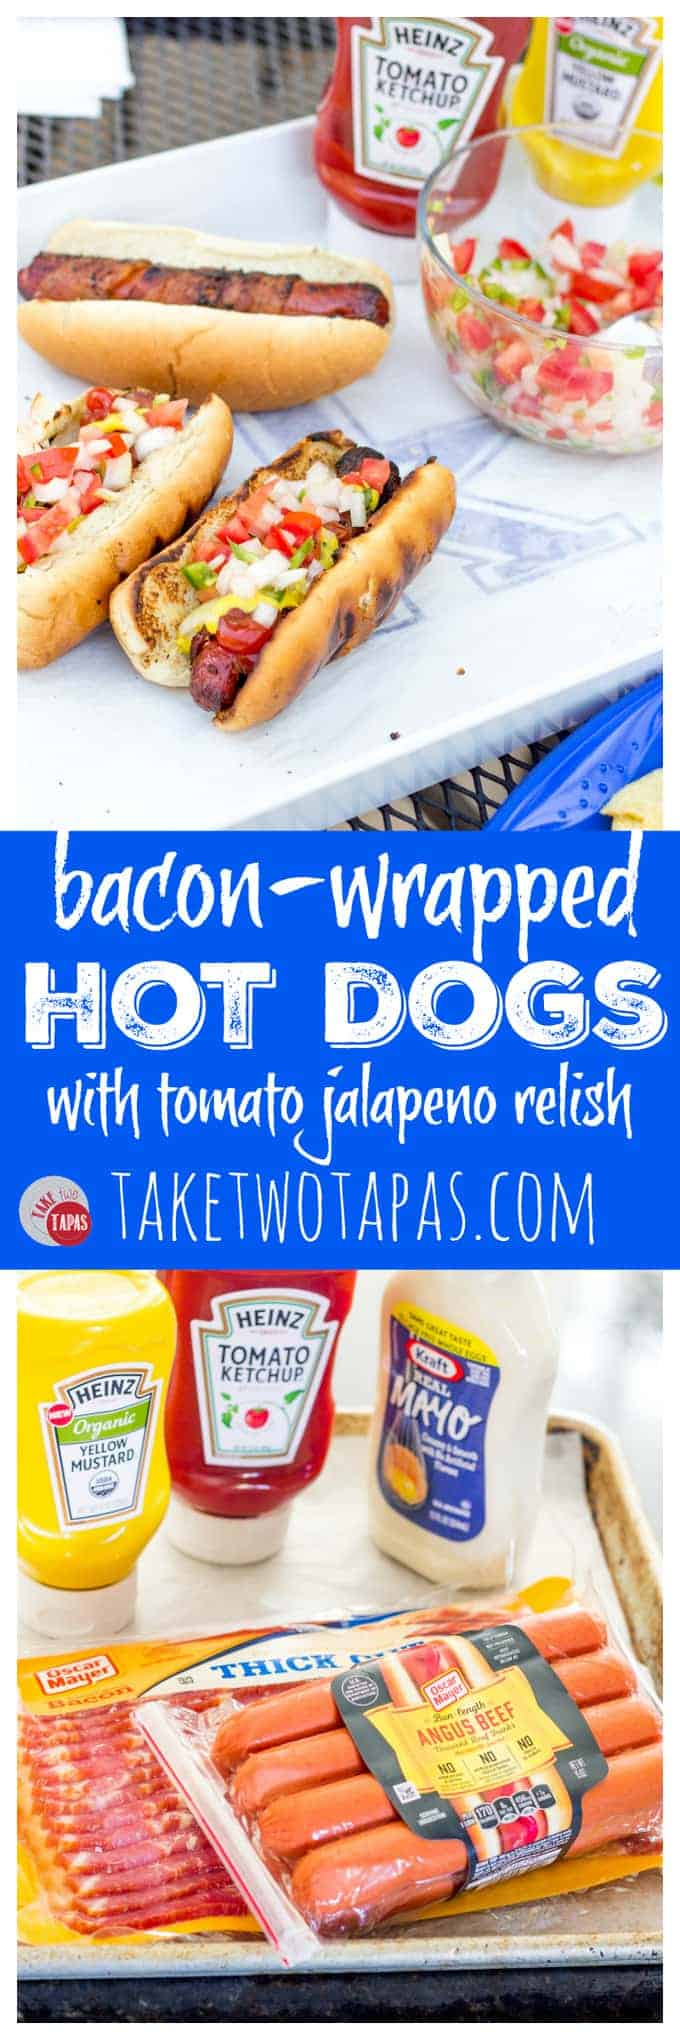 Bacon Wrapped Hot Dogs with tomato onion jalapeno relish | Take Two Tapas